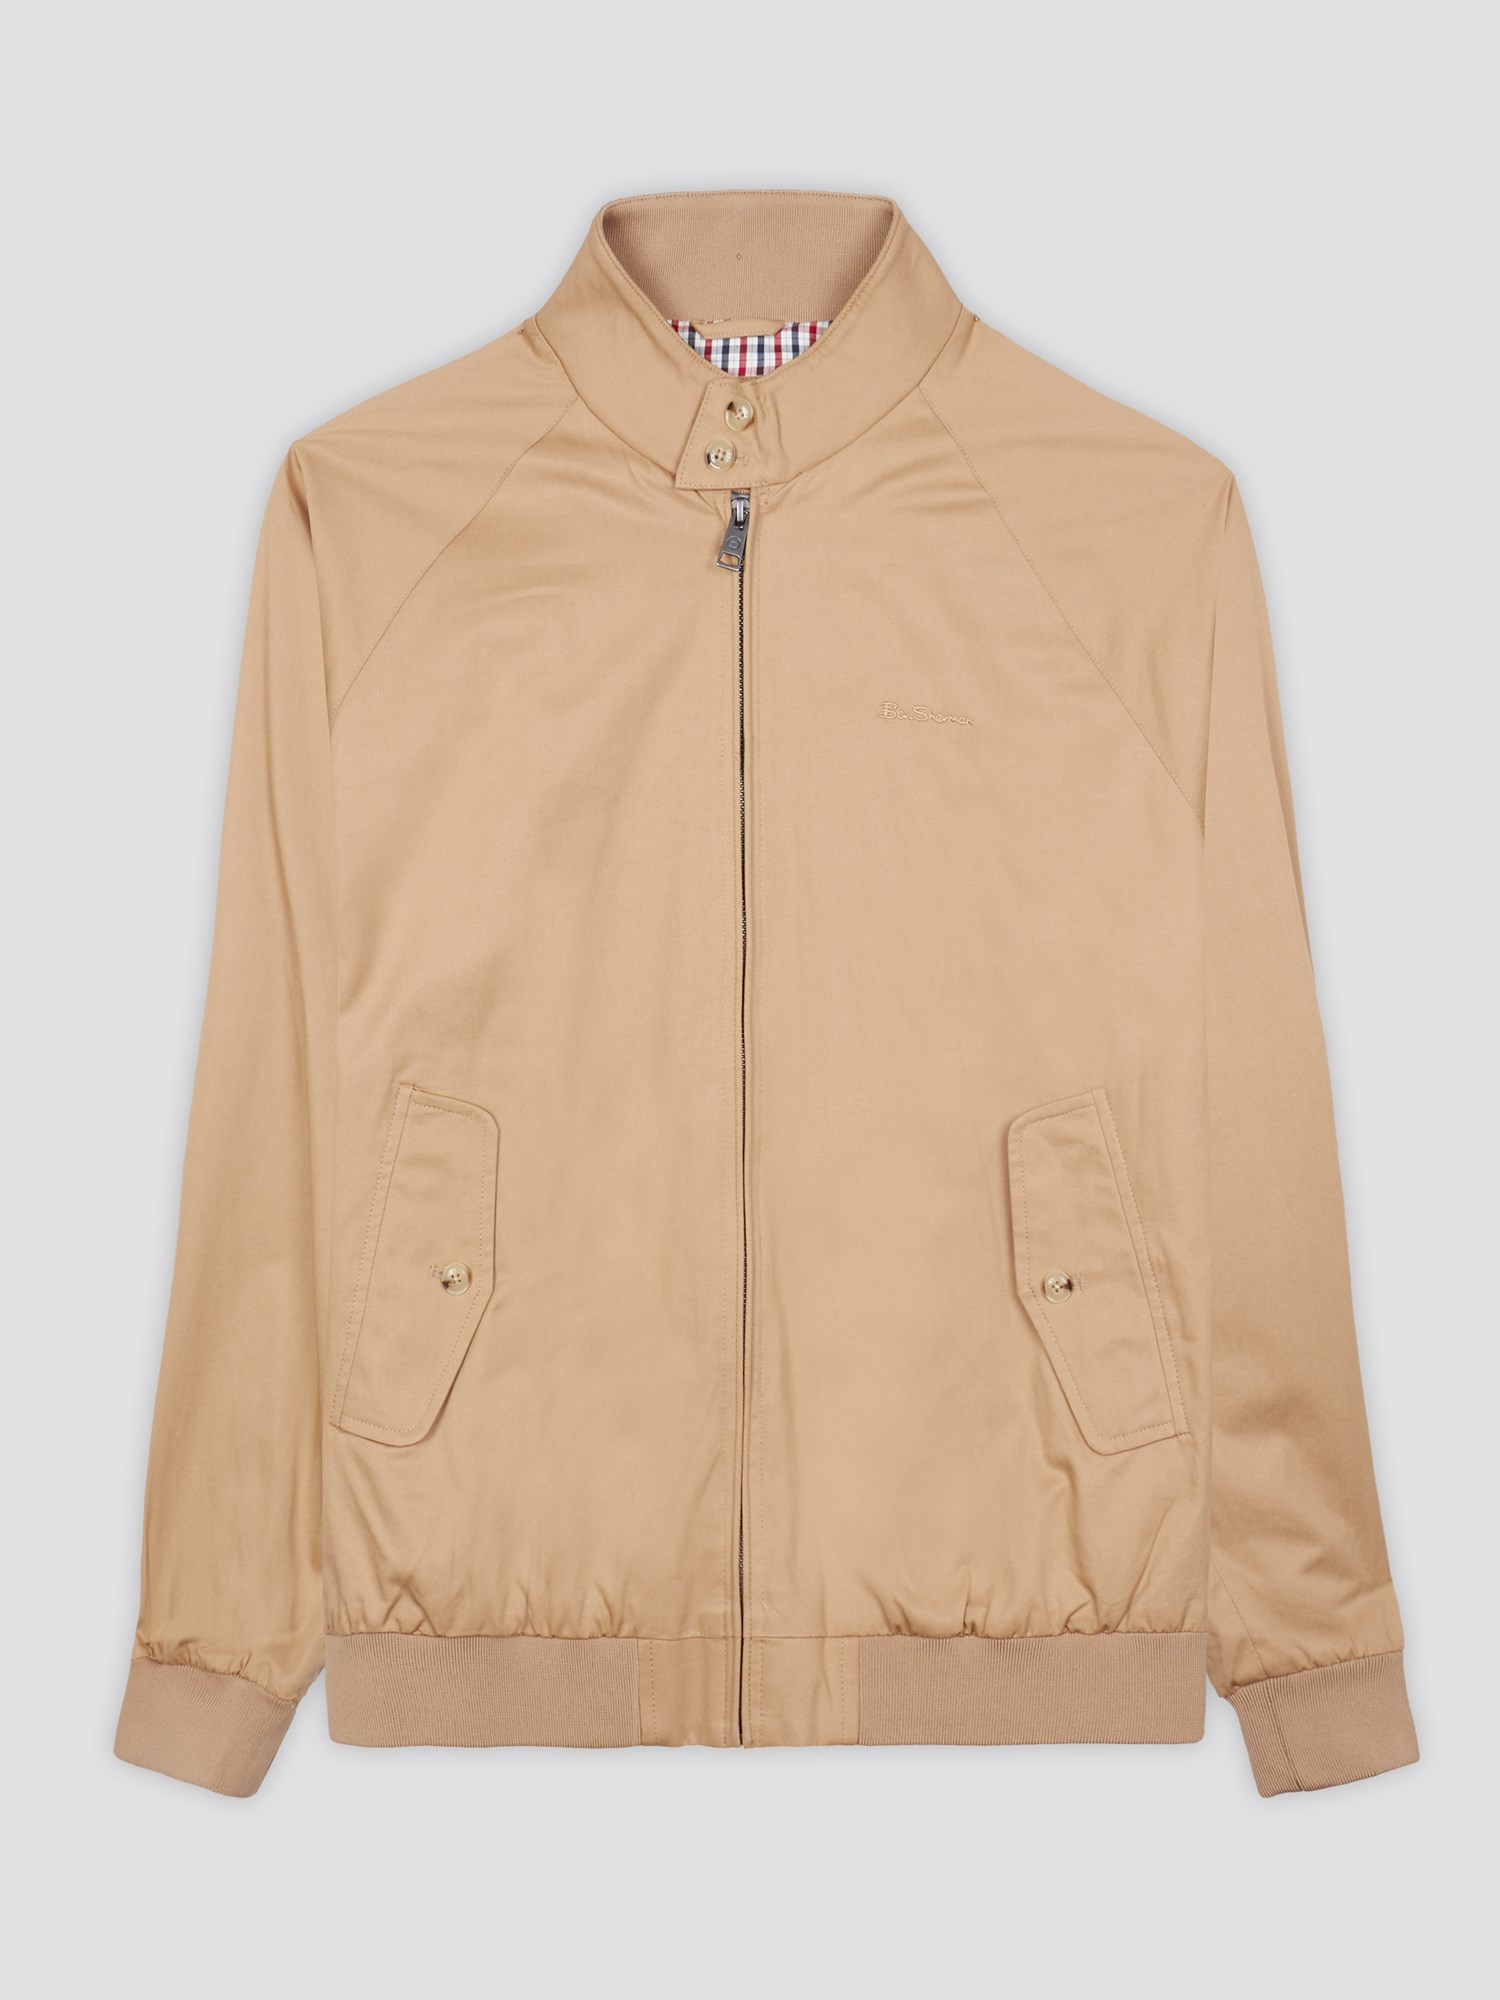 Ben Sherman -Harrington Jacket - Sand